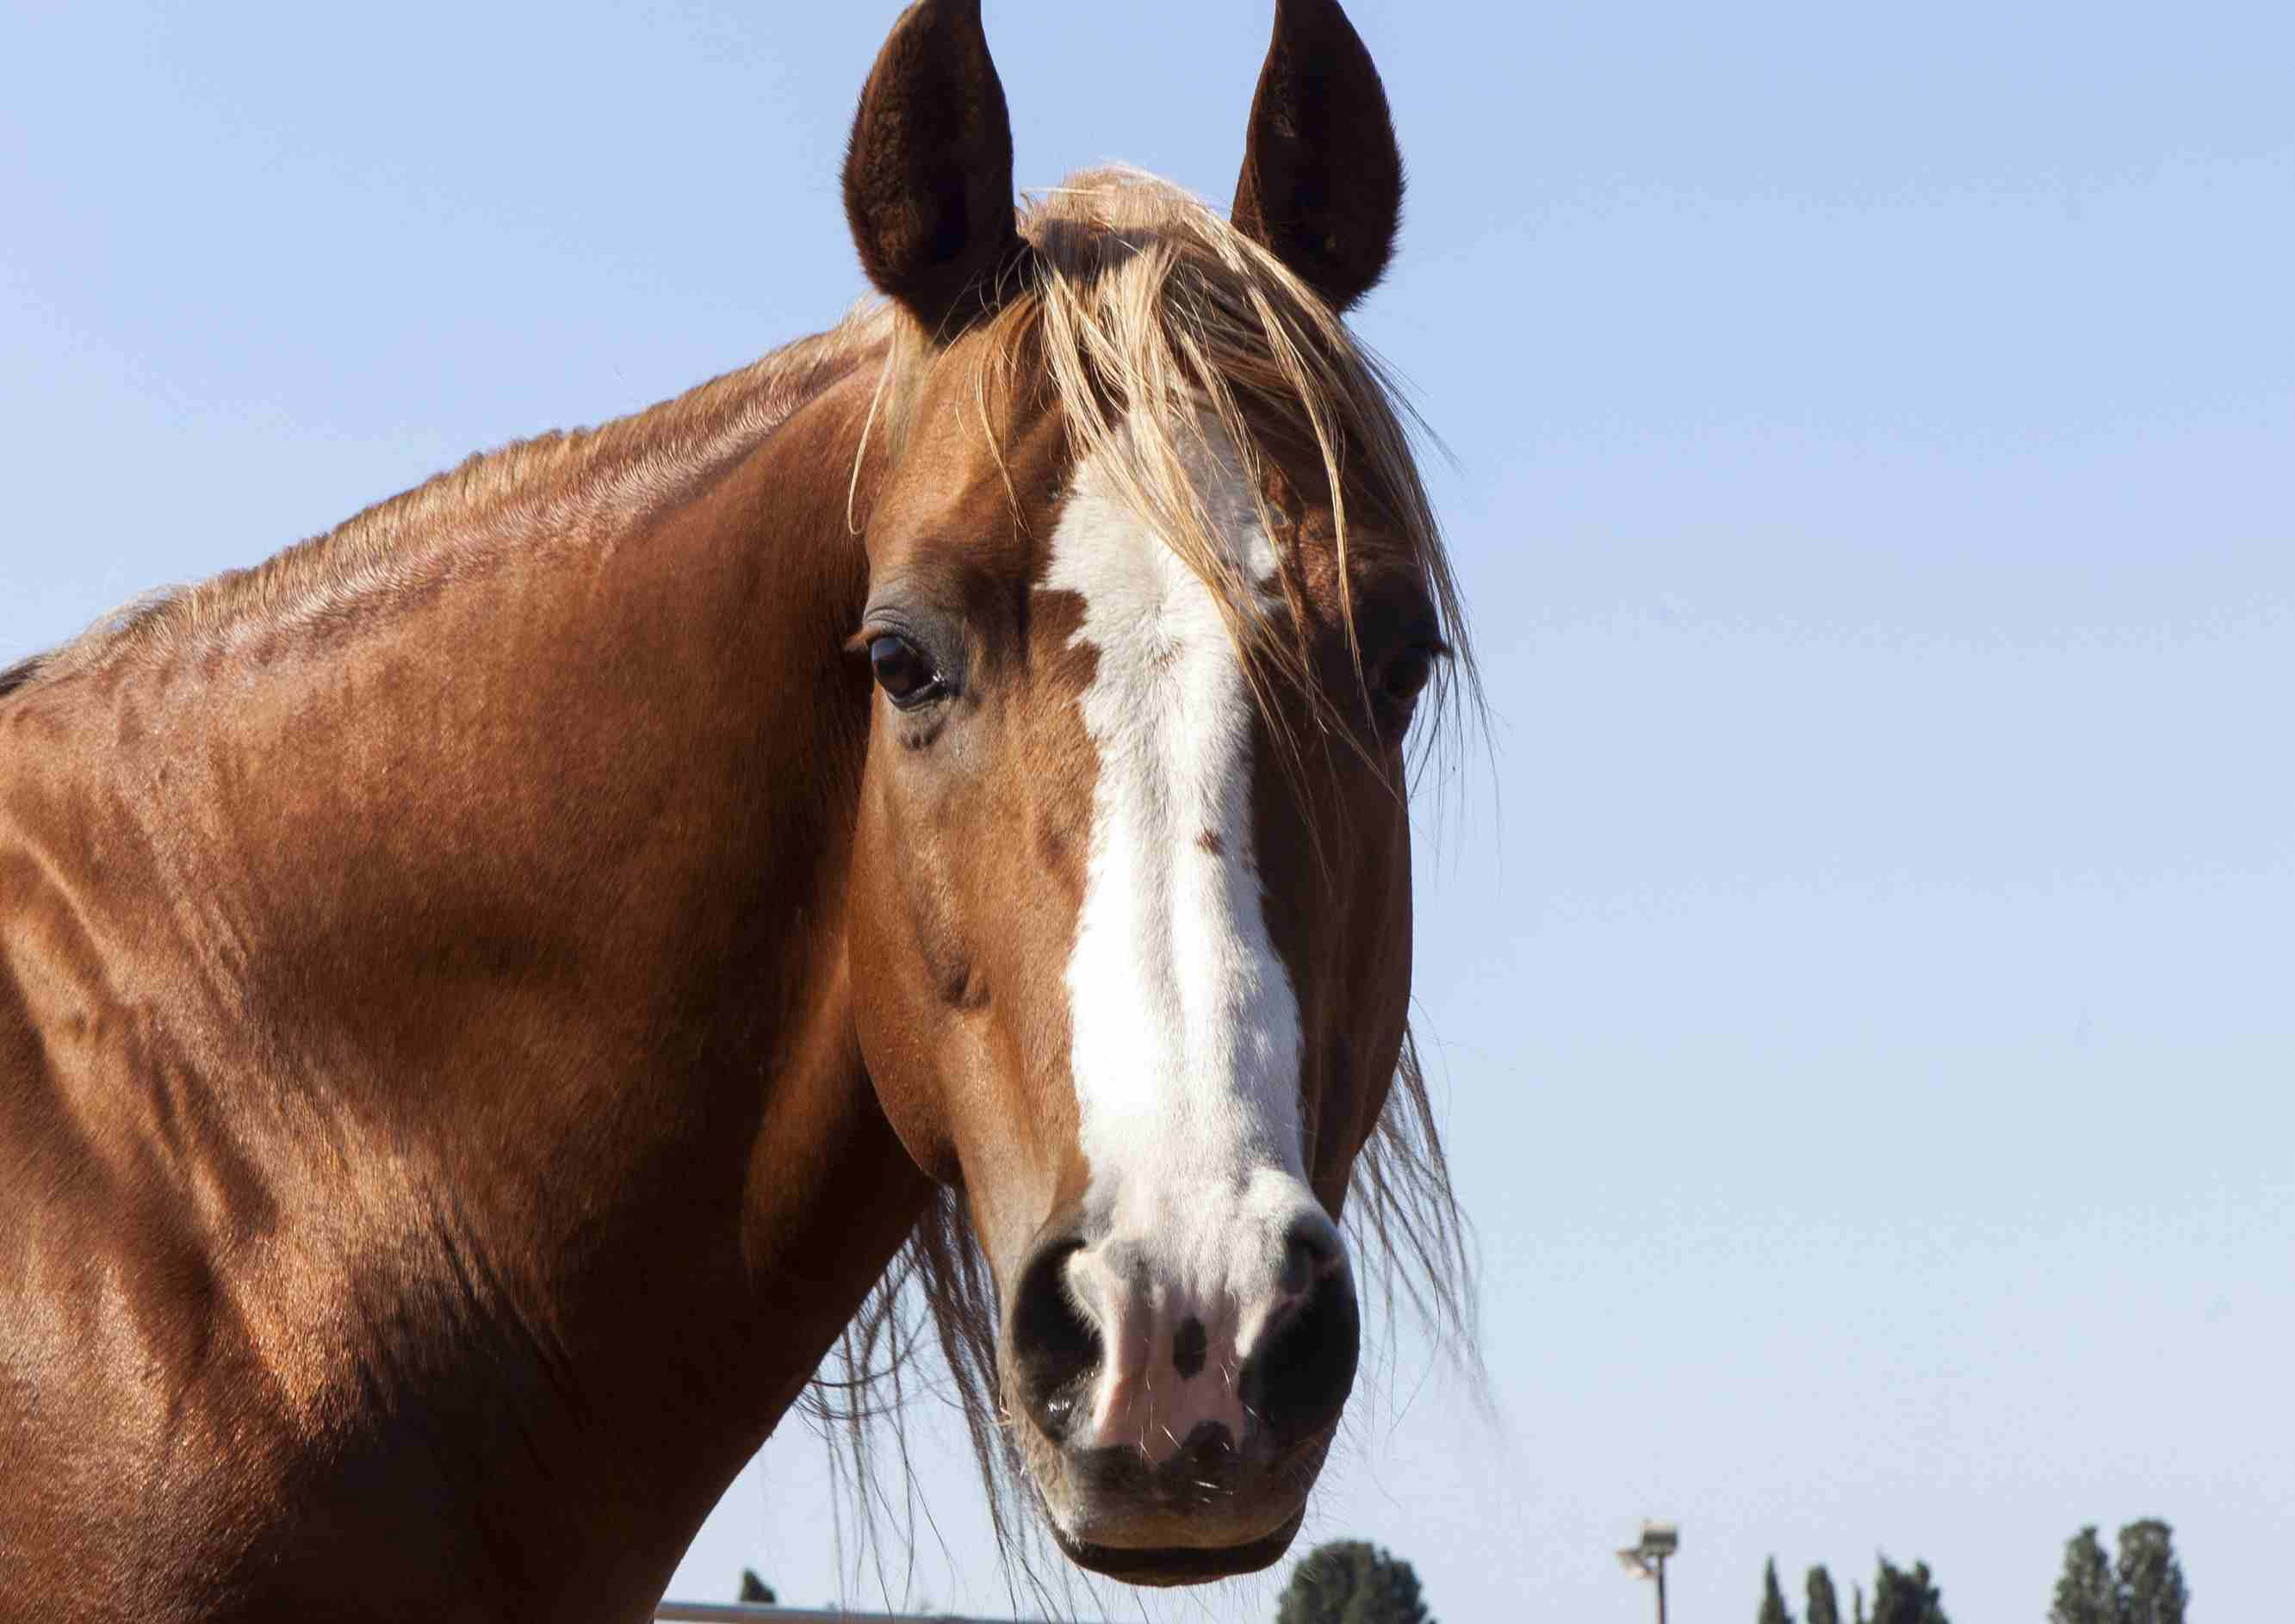 A horse looking directly forward.